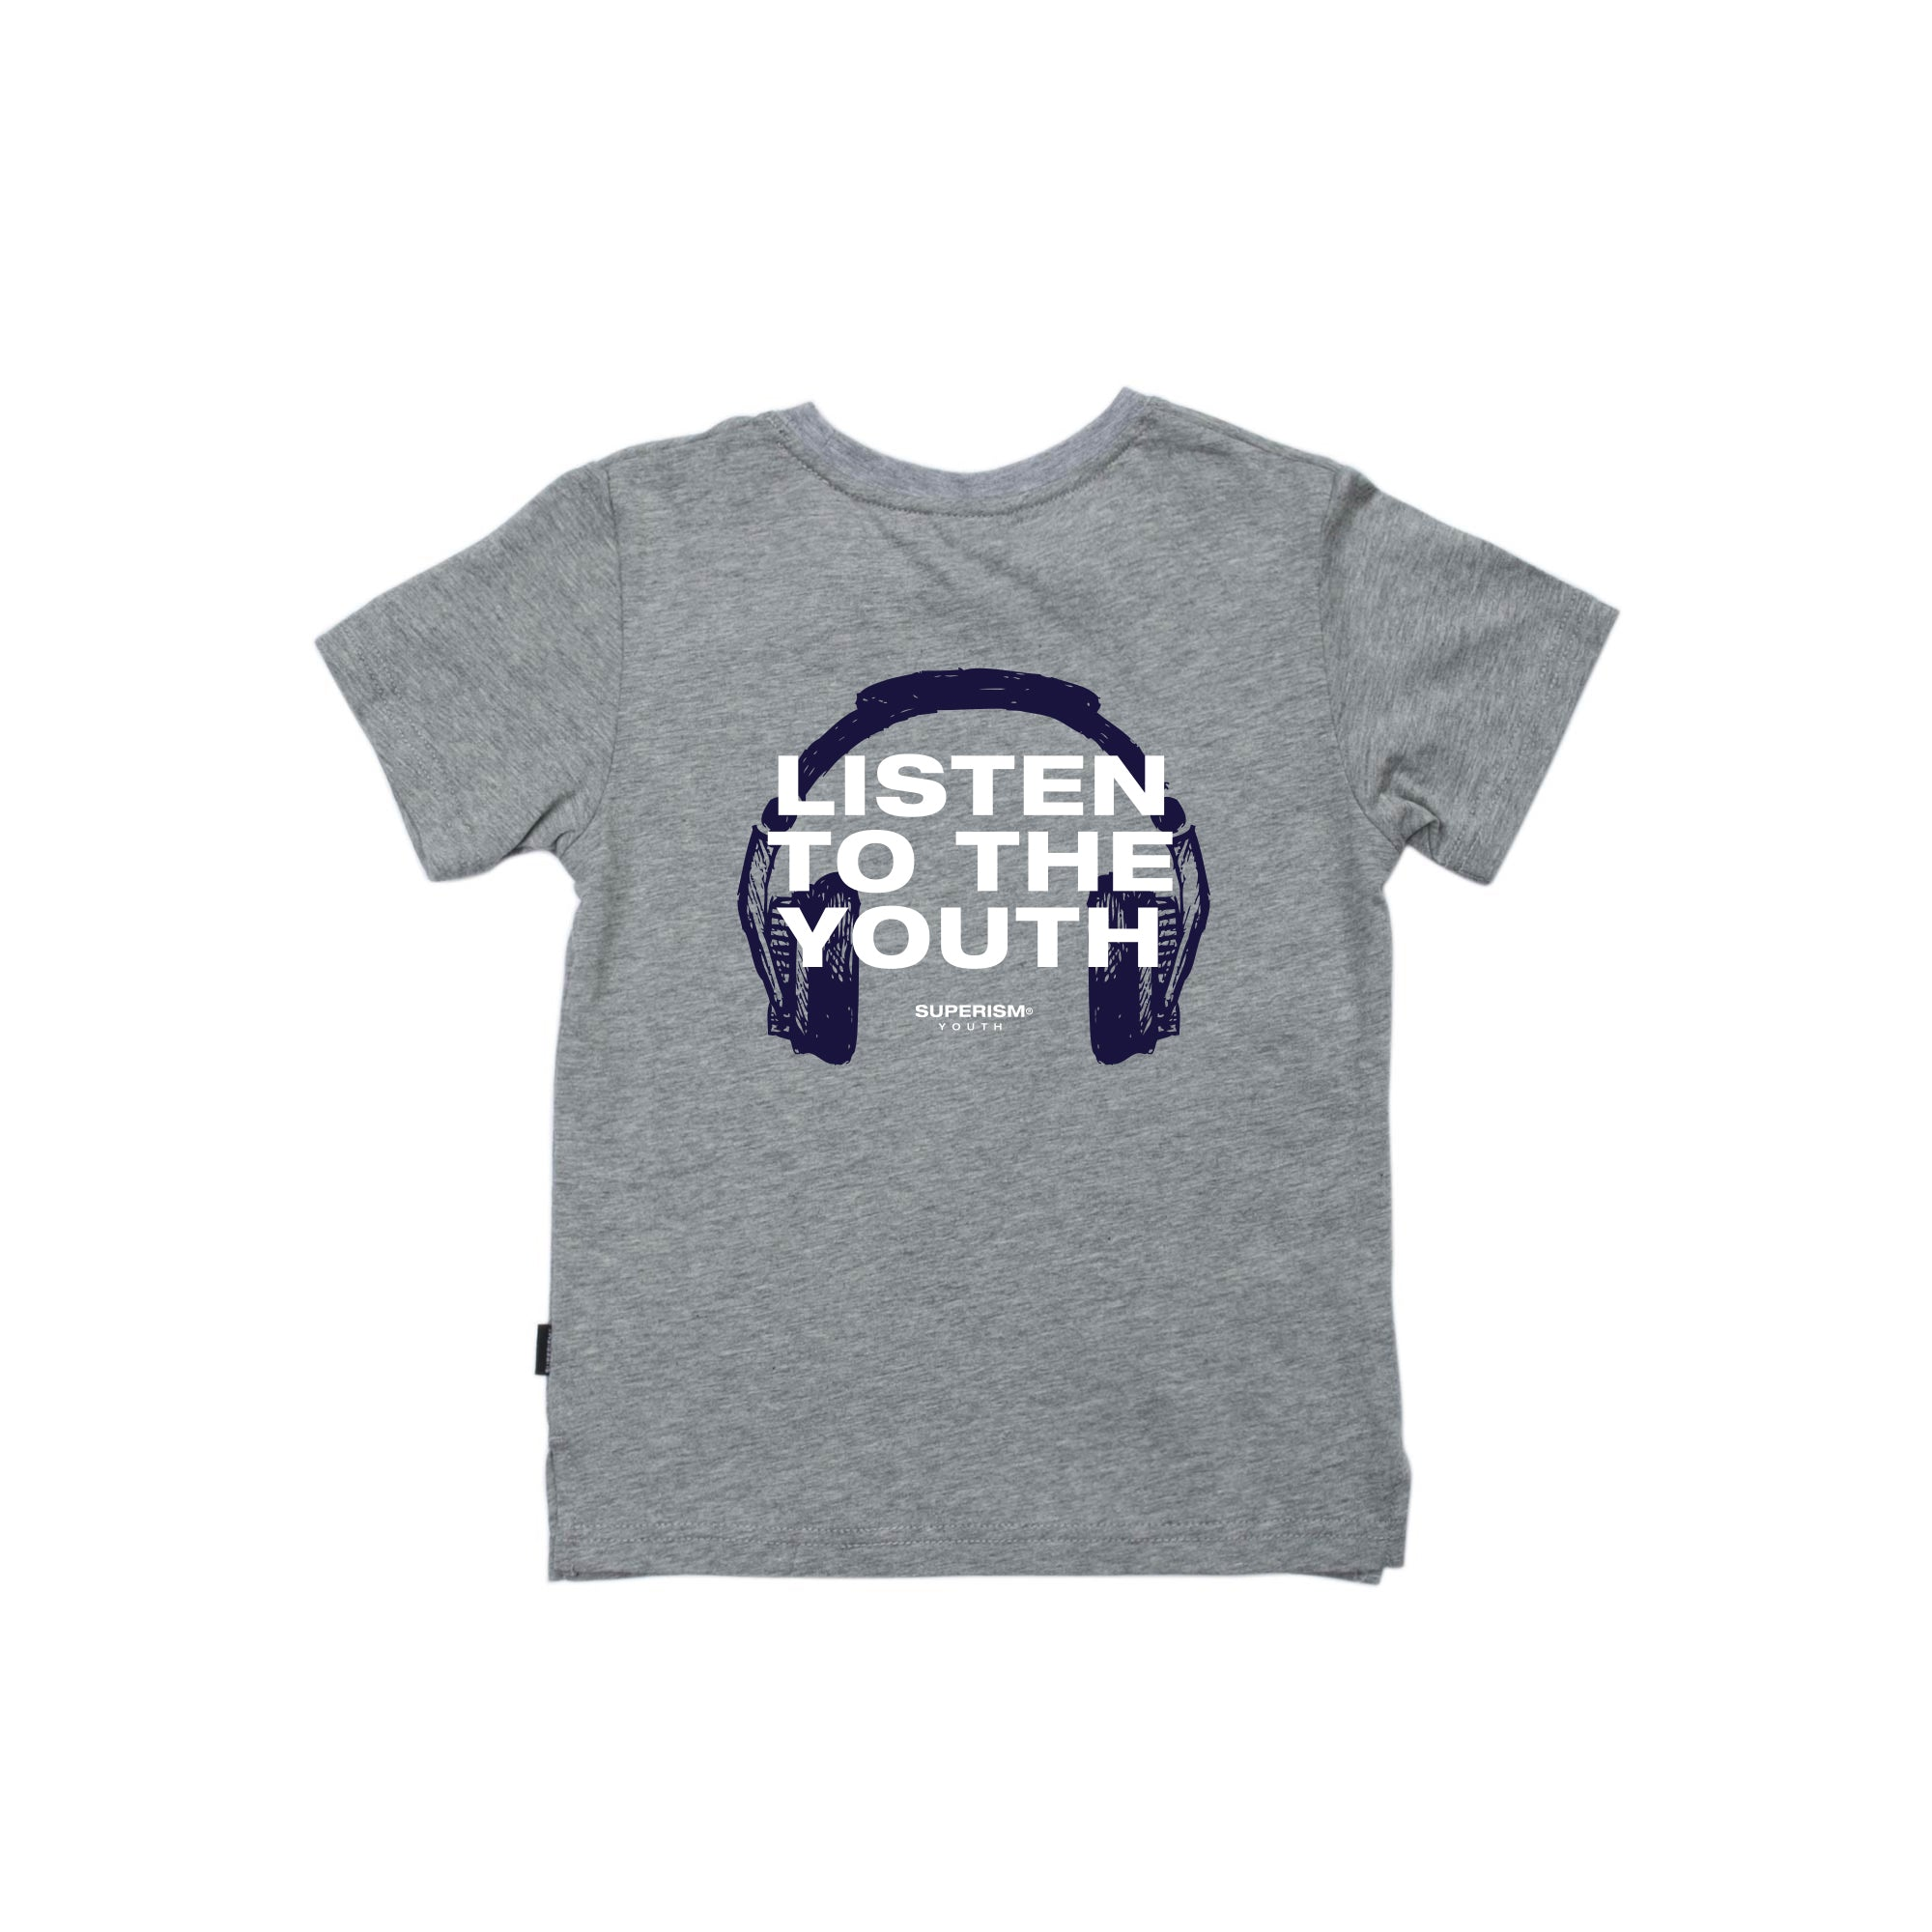 Listen to the Youth - Grey